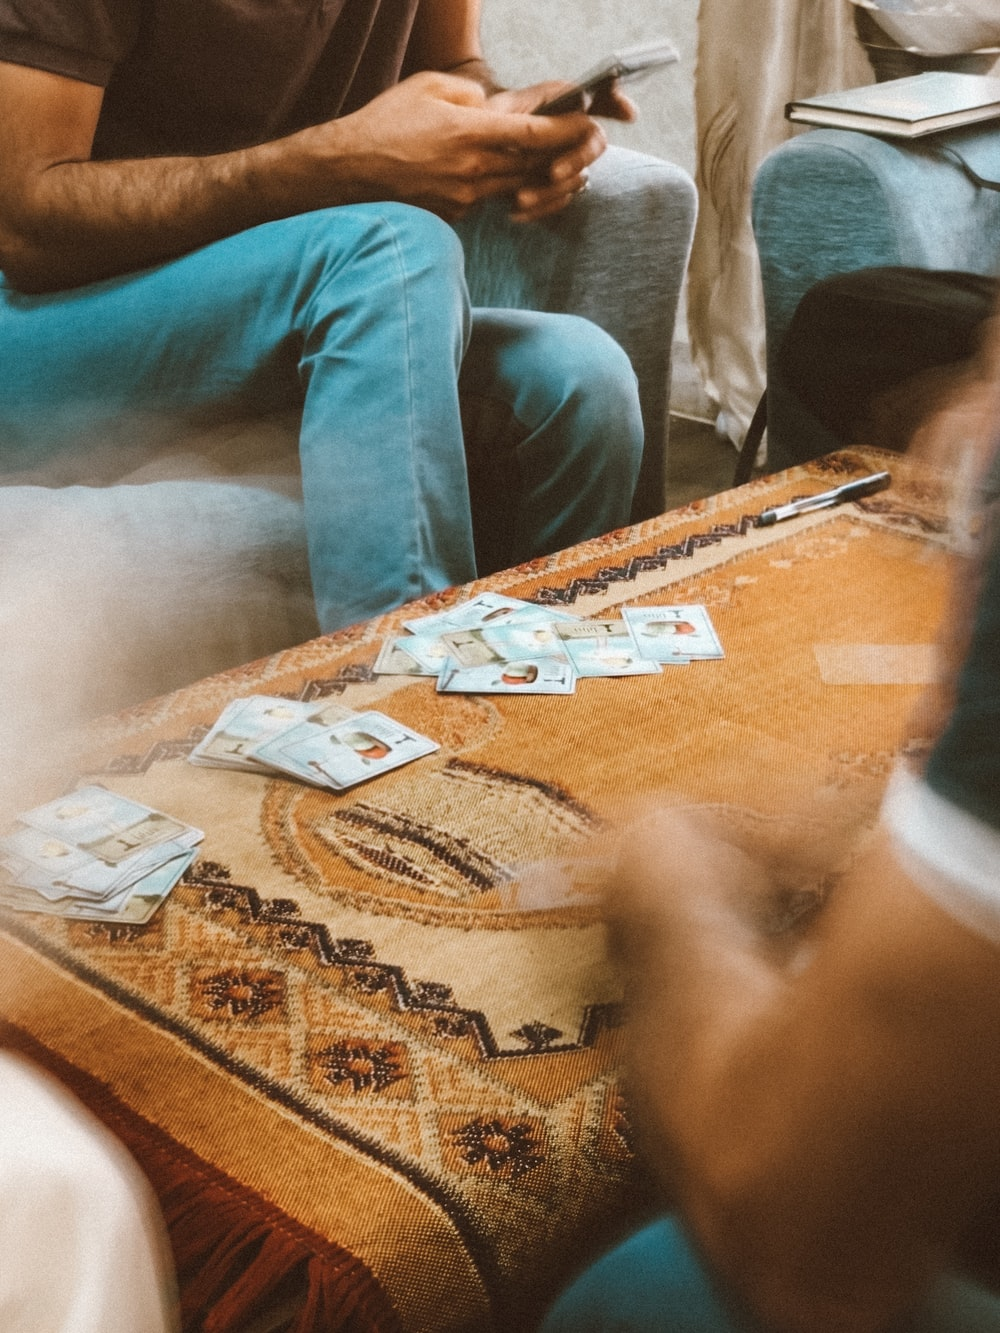 playing card on top of coffee table